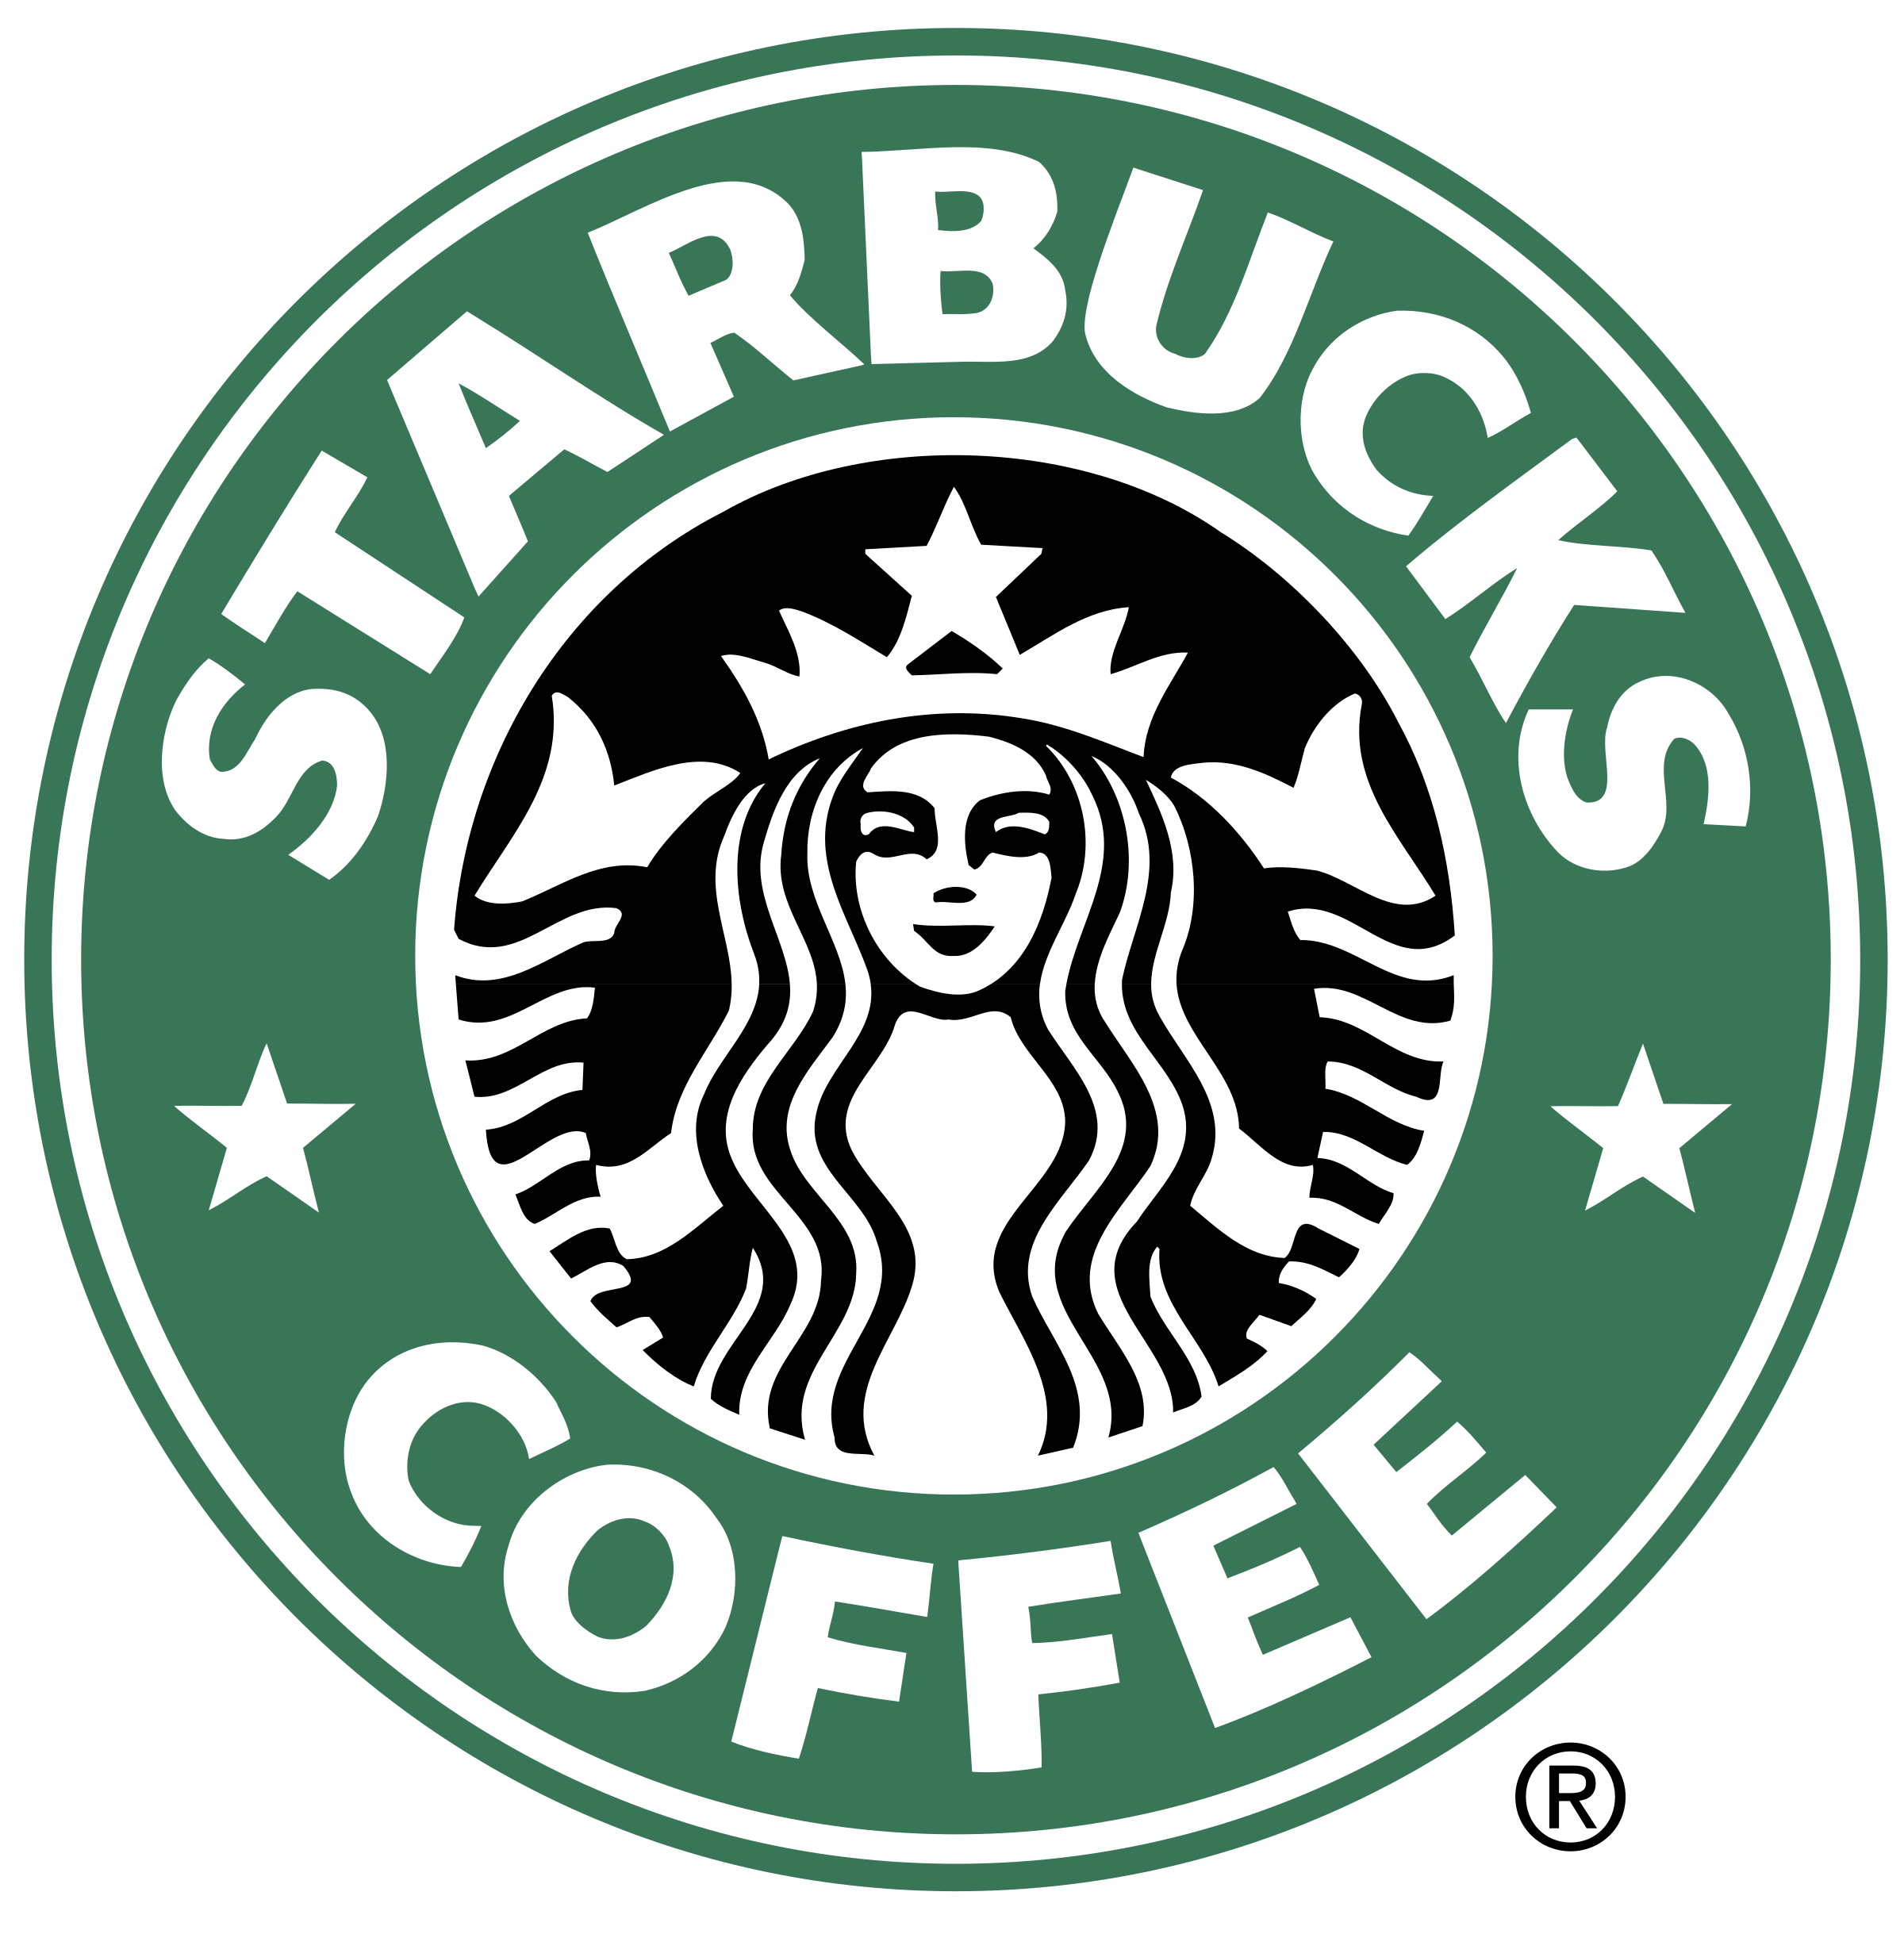 Star wars starbucks clipart png free library Starbucks Coffee Logo PNG Transparent & SVG Vector - Freebie Supply png free library